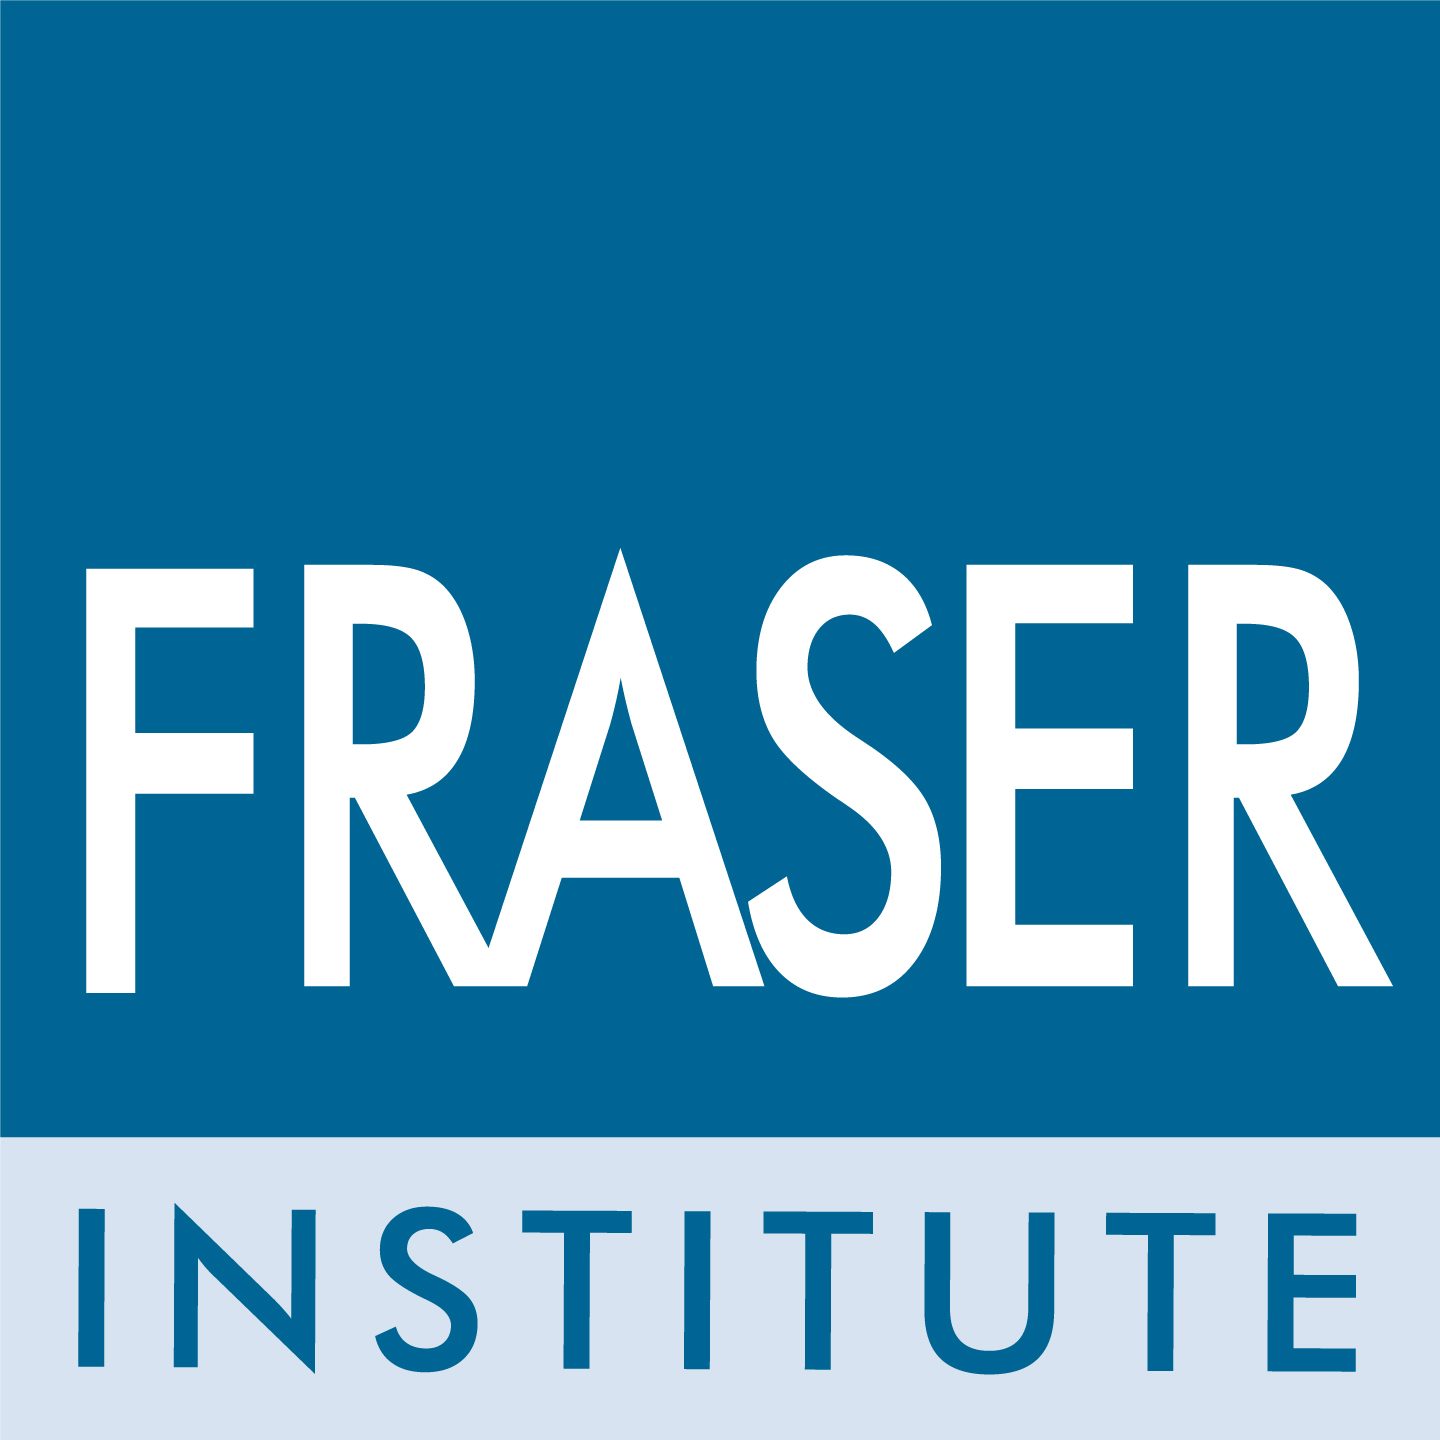 Fraser Institute Media Advisory: How long do Canadians wait for health care? Annual report coming Tuesday, Dec